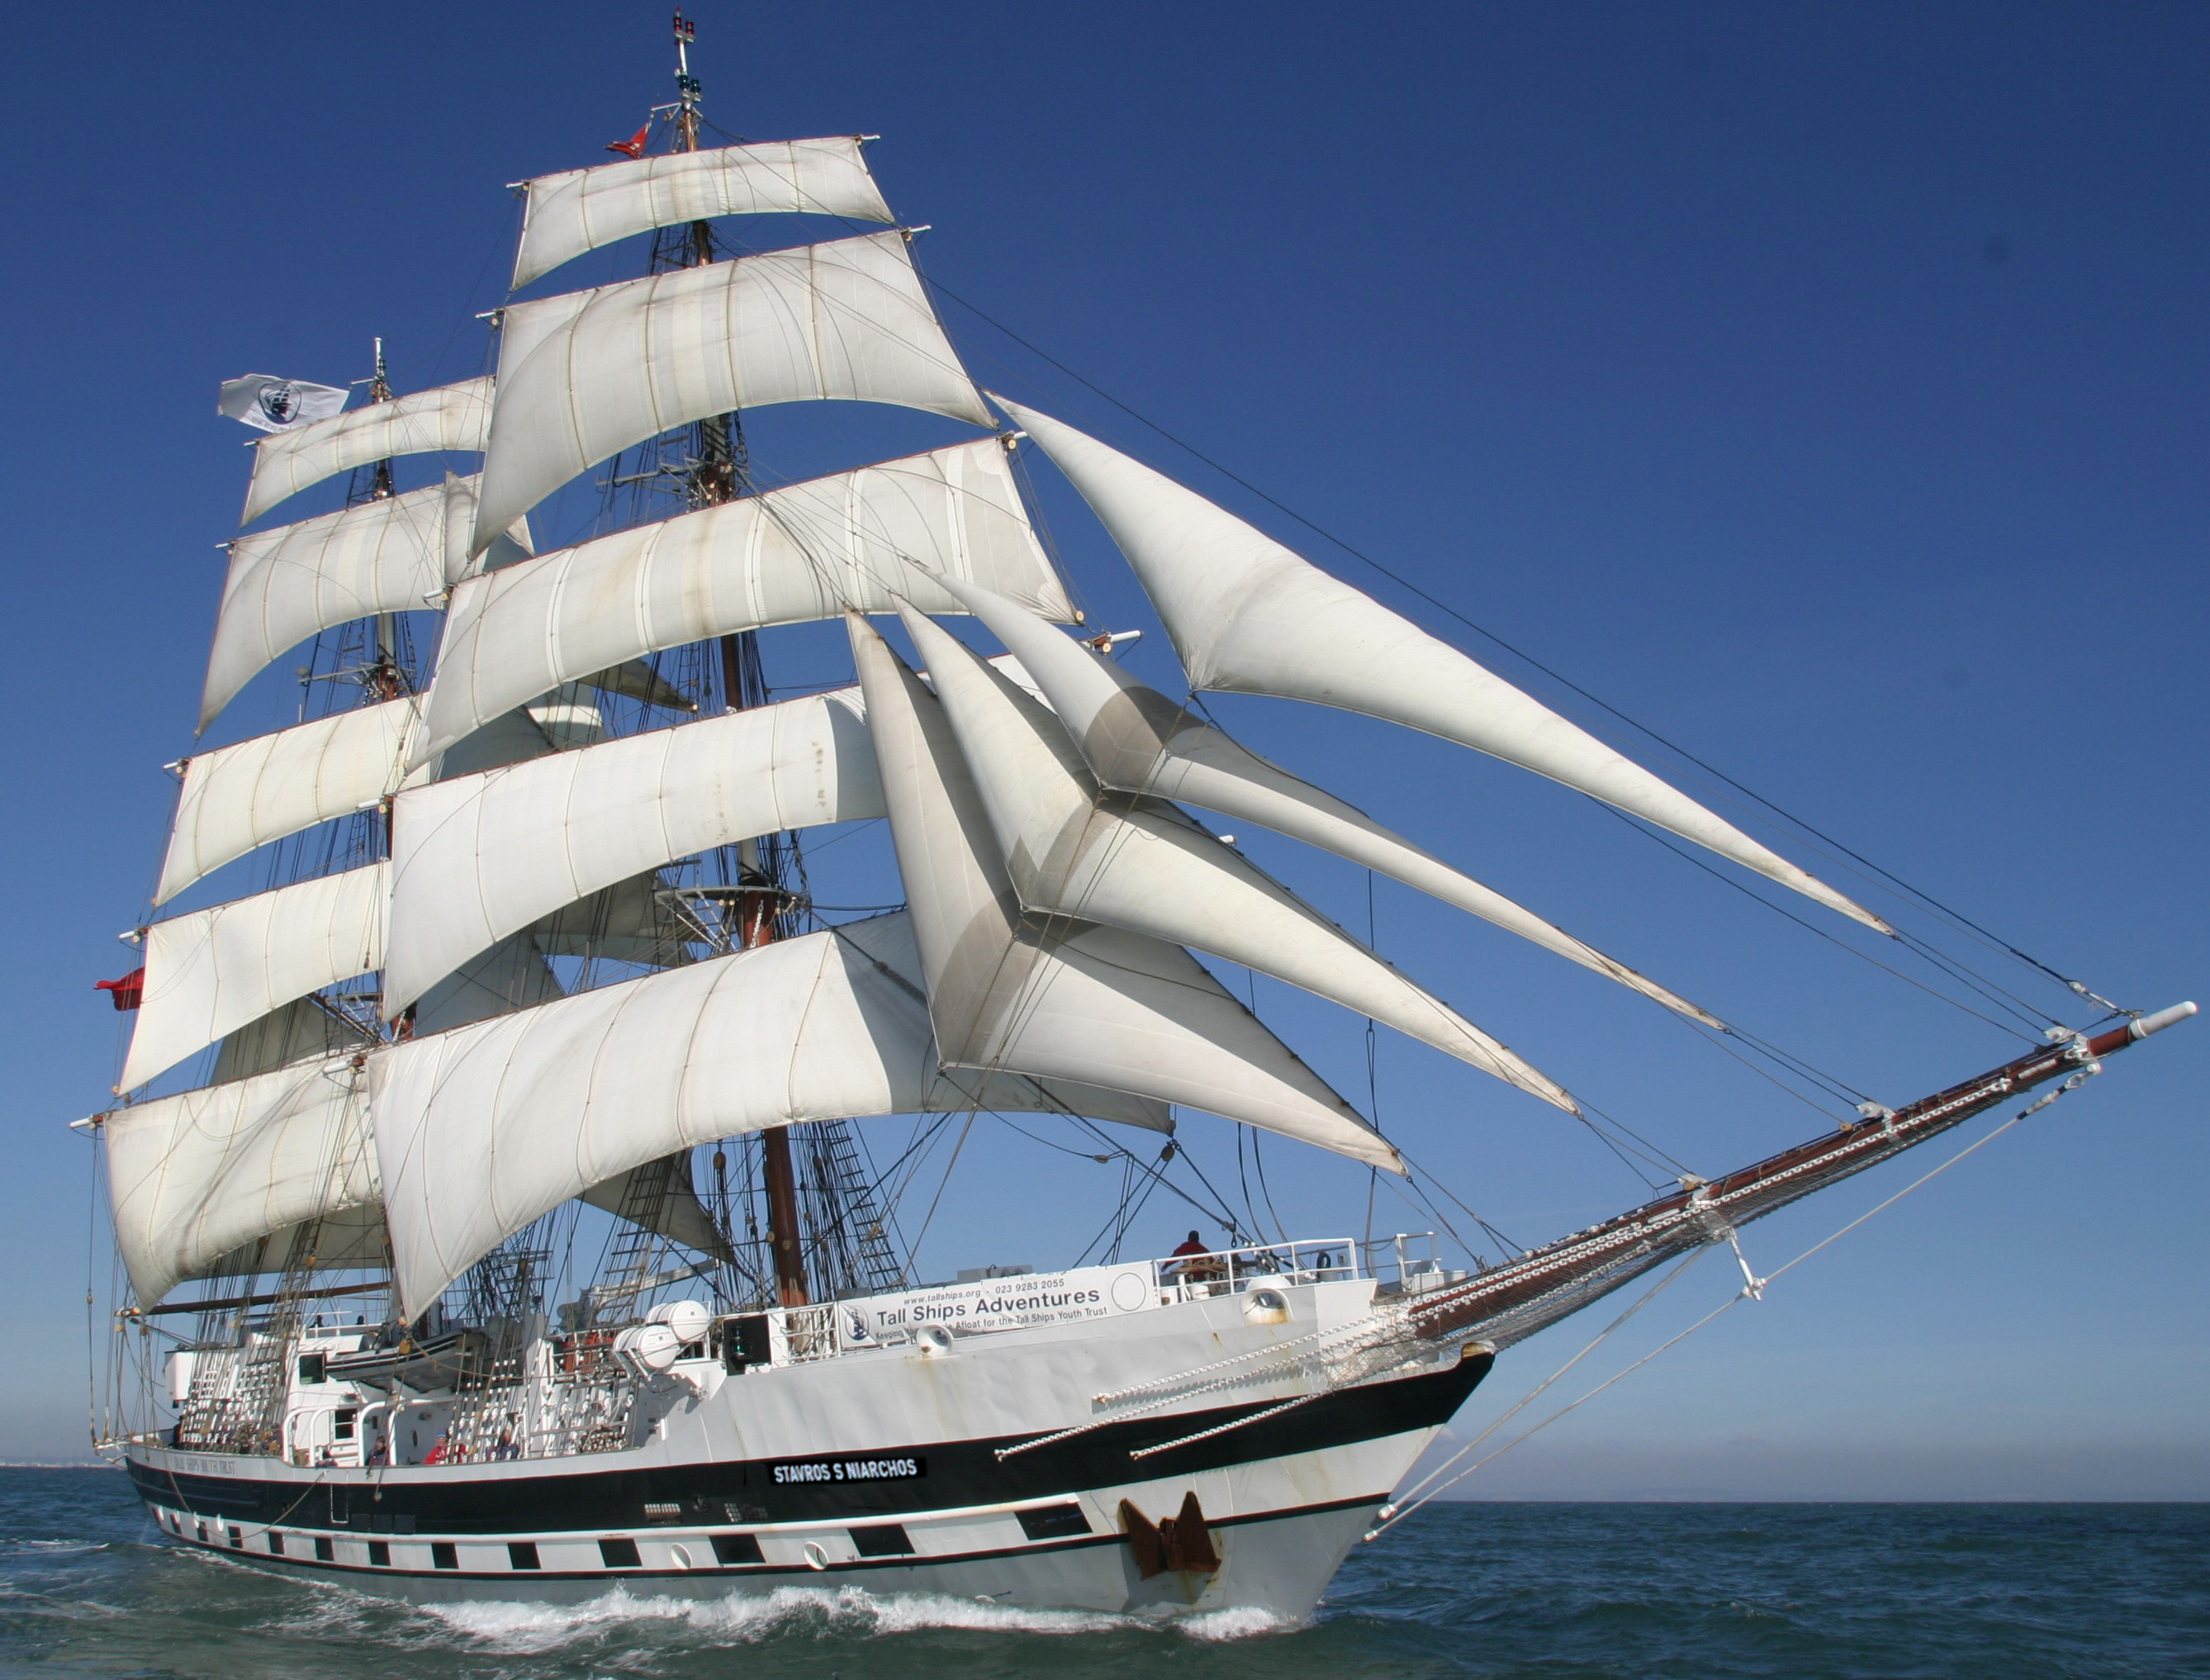 Pictures: Sail training vessel - Stavros S Niarchos - to be auctioned - YBW